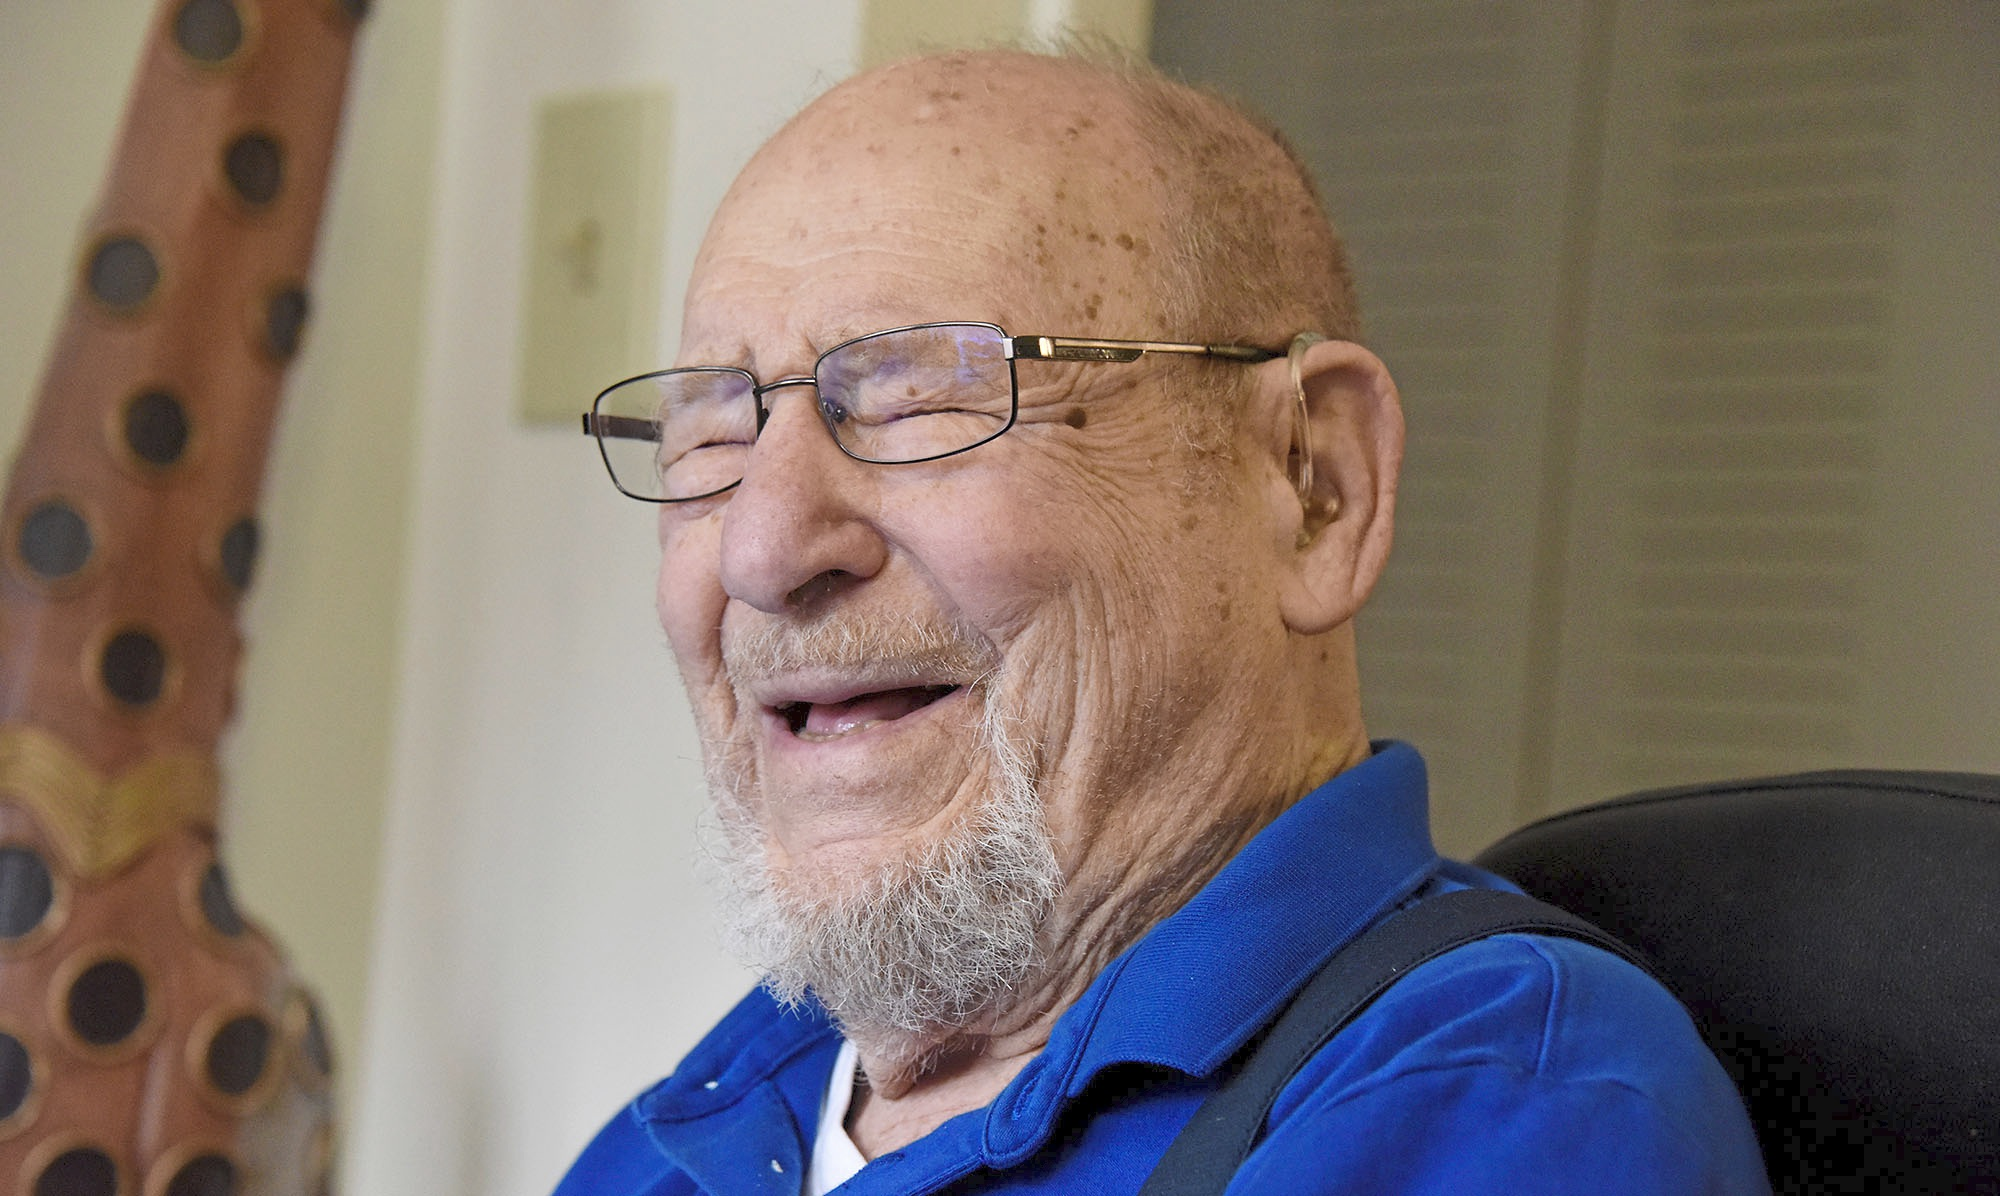 20180316dsSENIORACADEMY0319Local02-1 Al Fineman, 97, laughs as he sits in his living room at the Riverview Towers apartments in Squirrel Hill. He is part of the Jewish Healthcare Foundation-sponsored Virtual Senior Academy to use their home computers to take various online classes and interact with each other through the video conferencing.